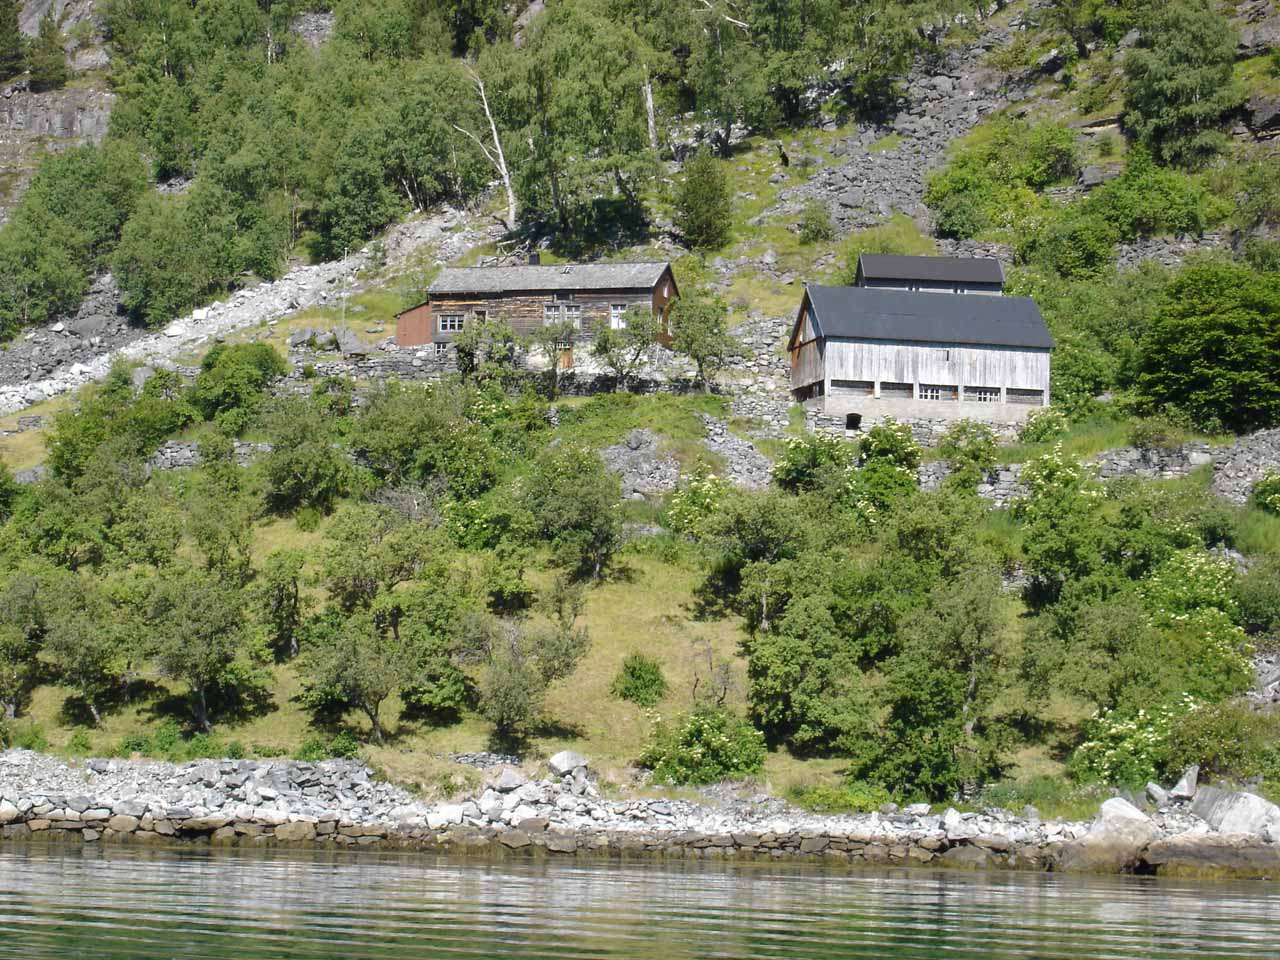 Looking towards some abandoned farms on the north side of Geirangerfjorden